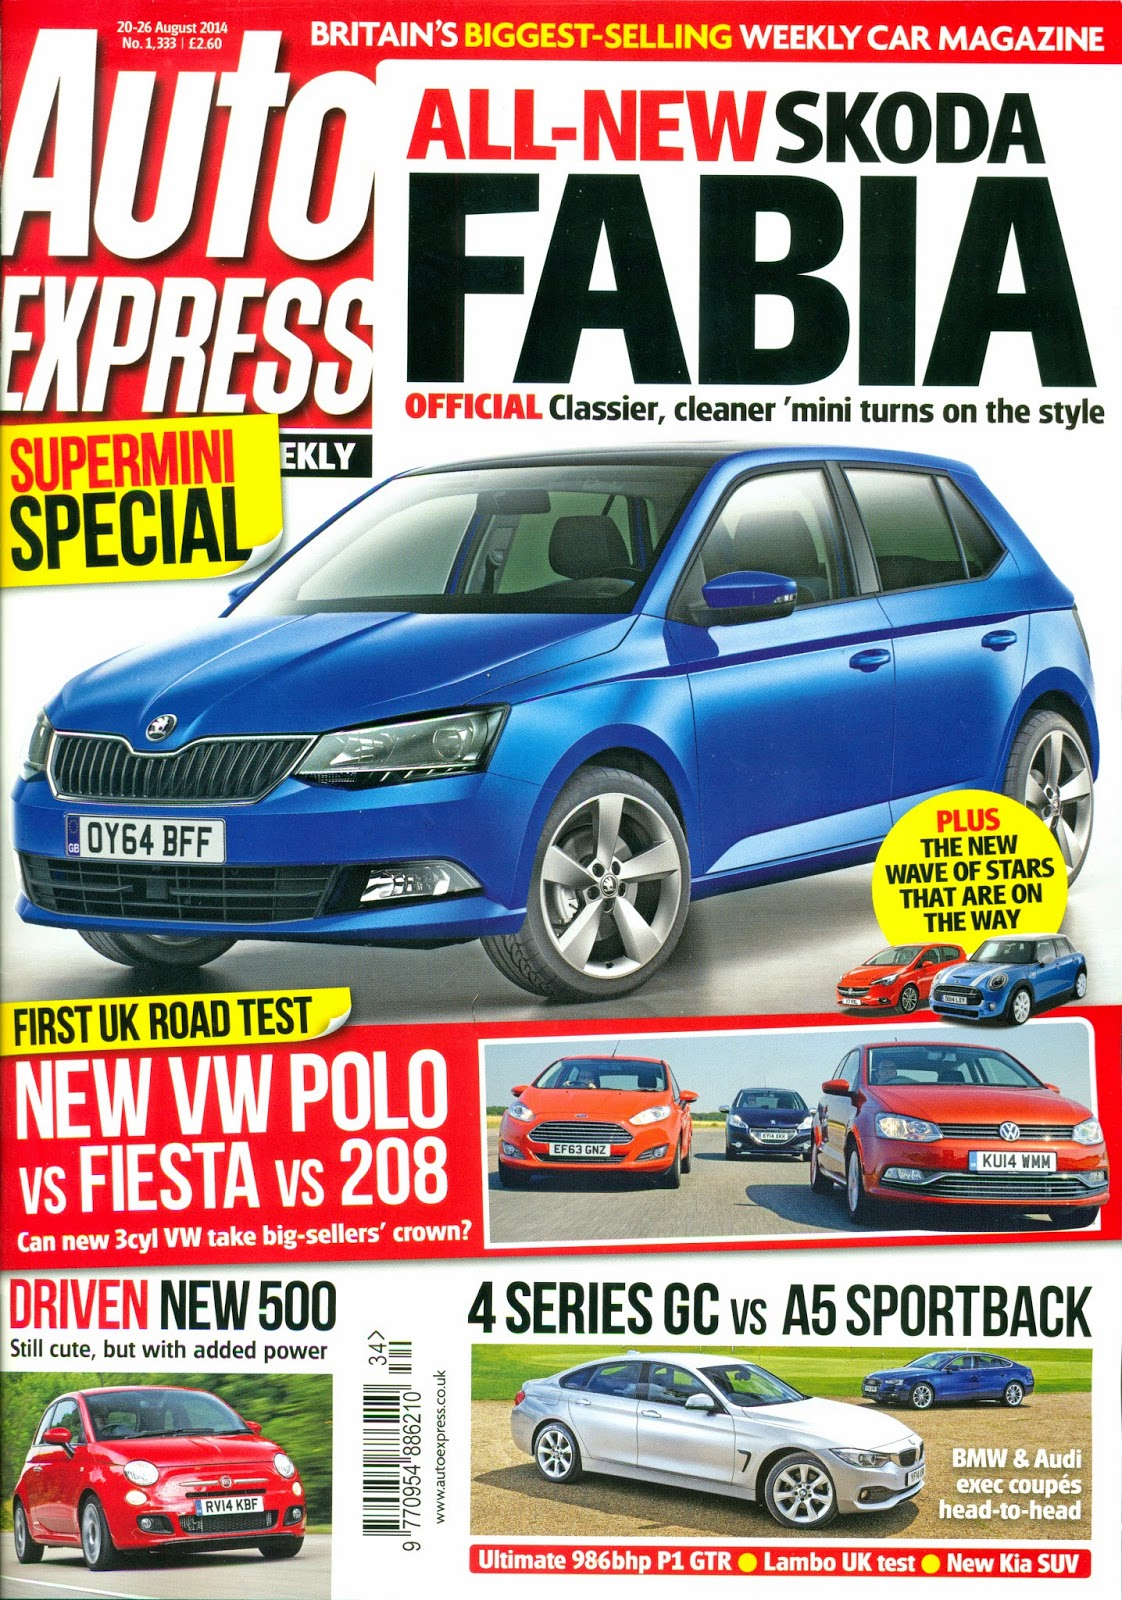 Auto Express Issue No 1,333 20-26 August 2014 Front Cover